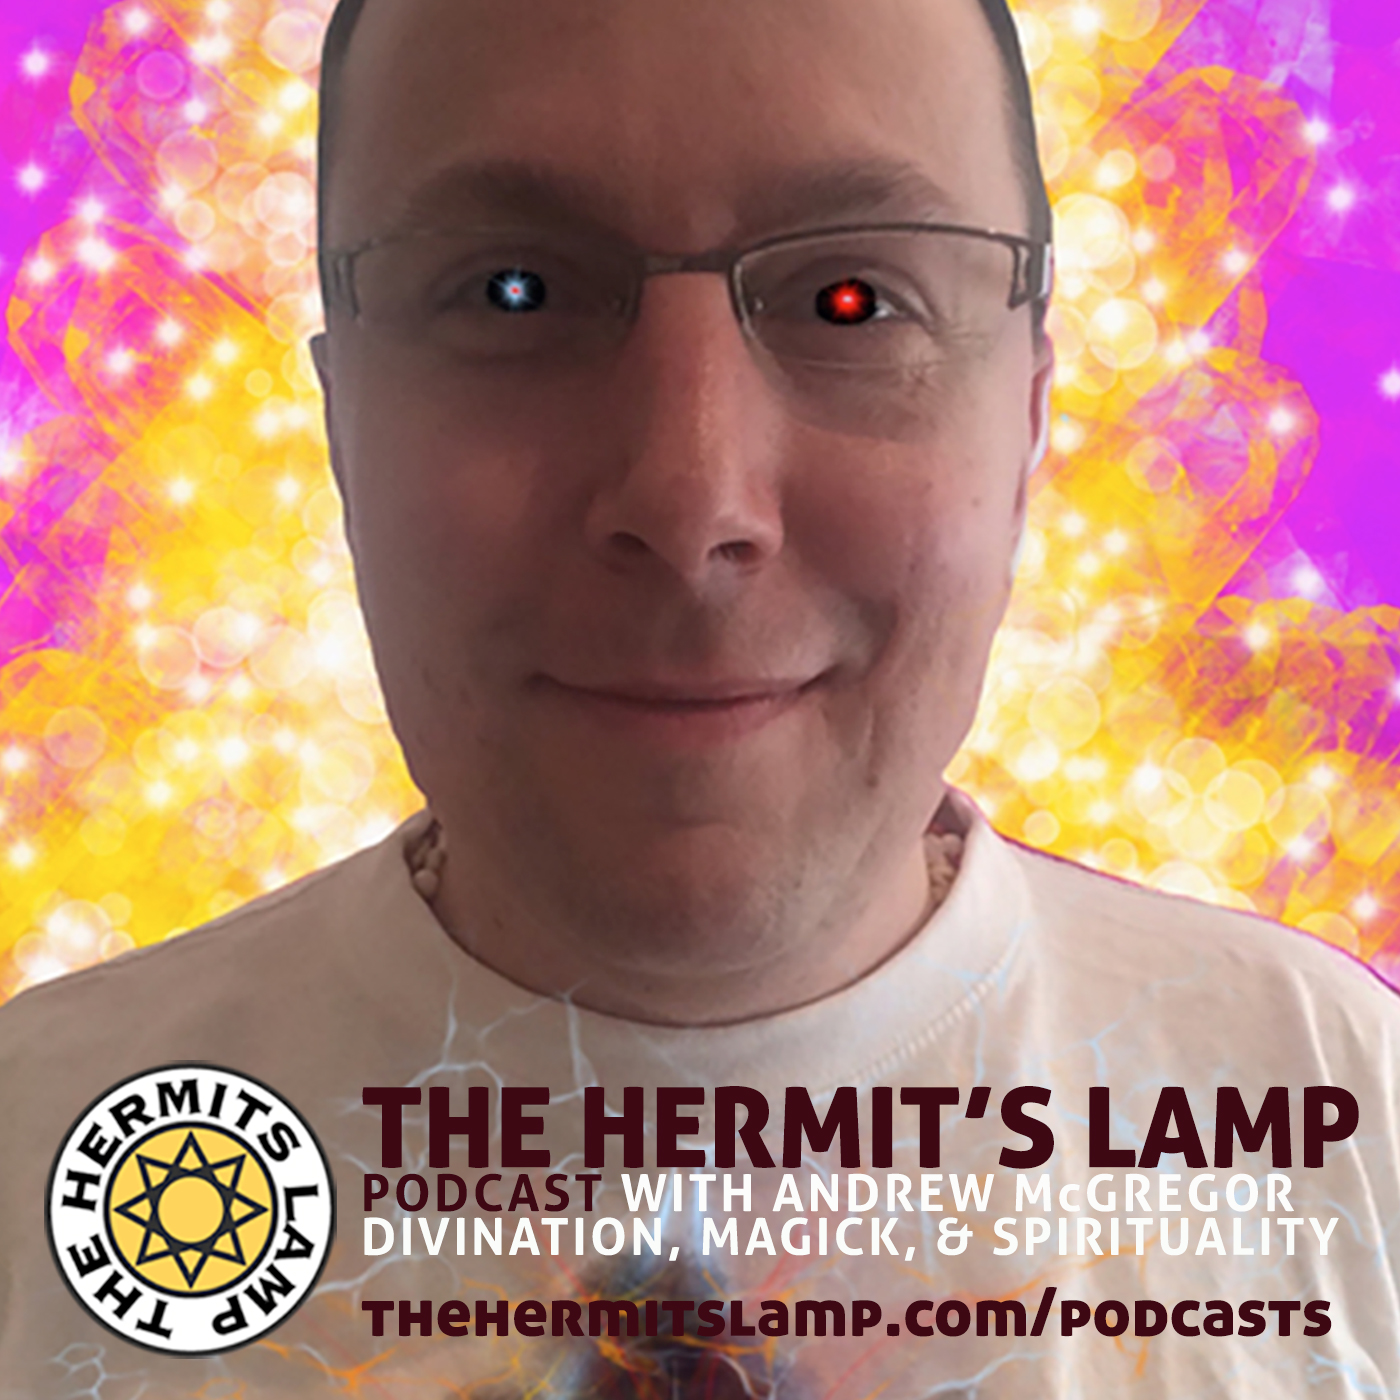 The Hermit's Lamp Podcast